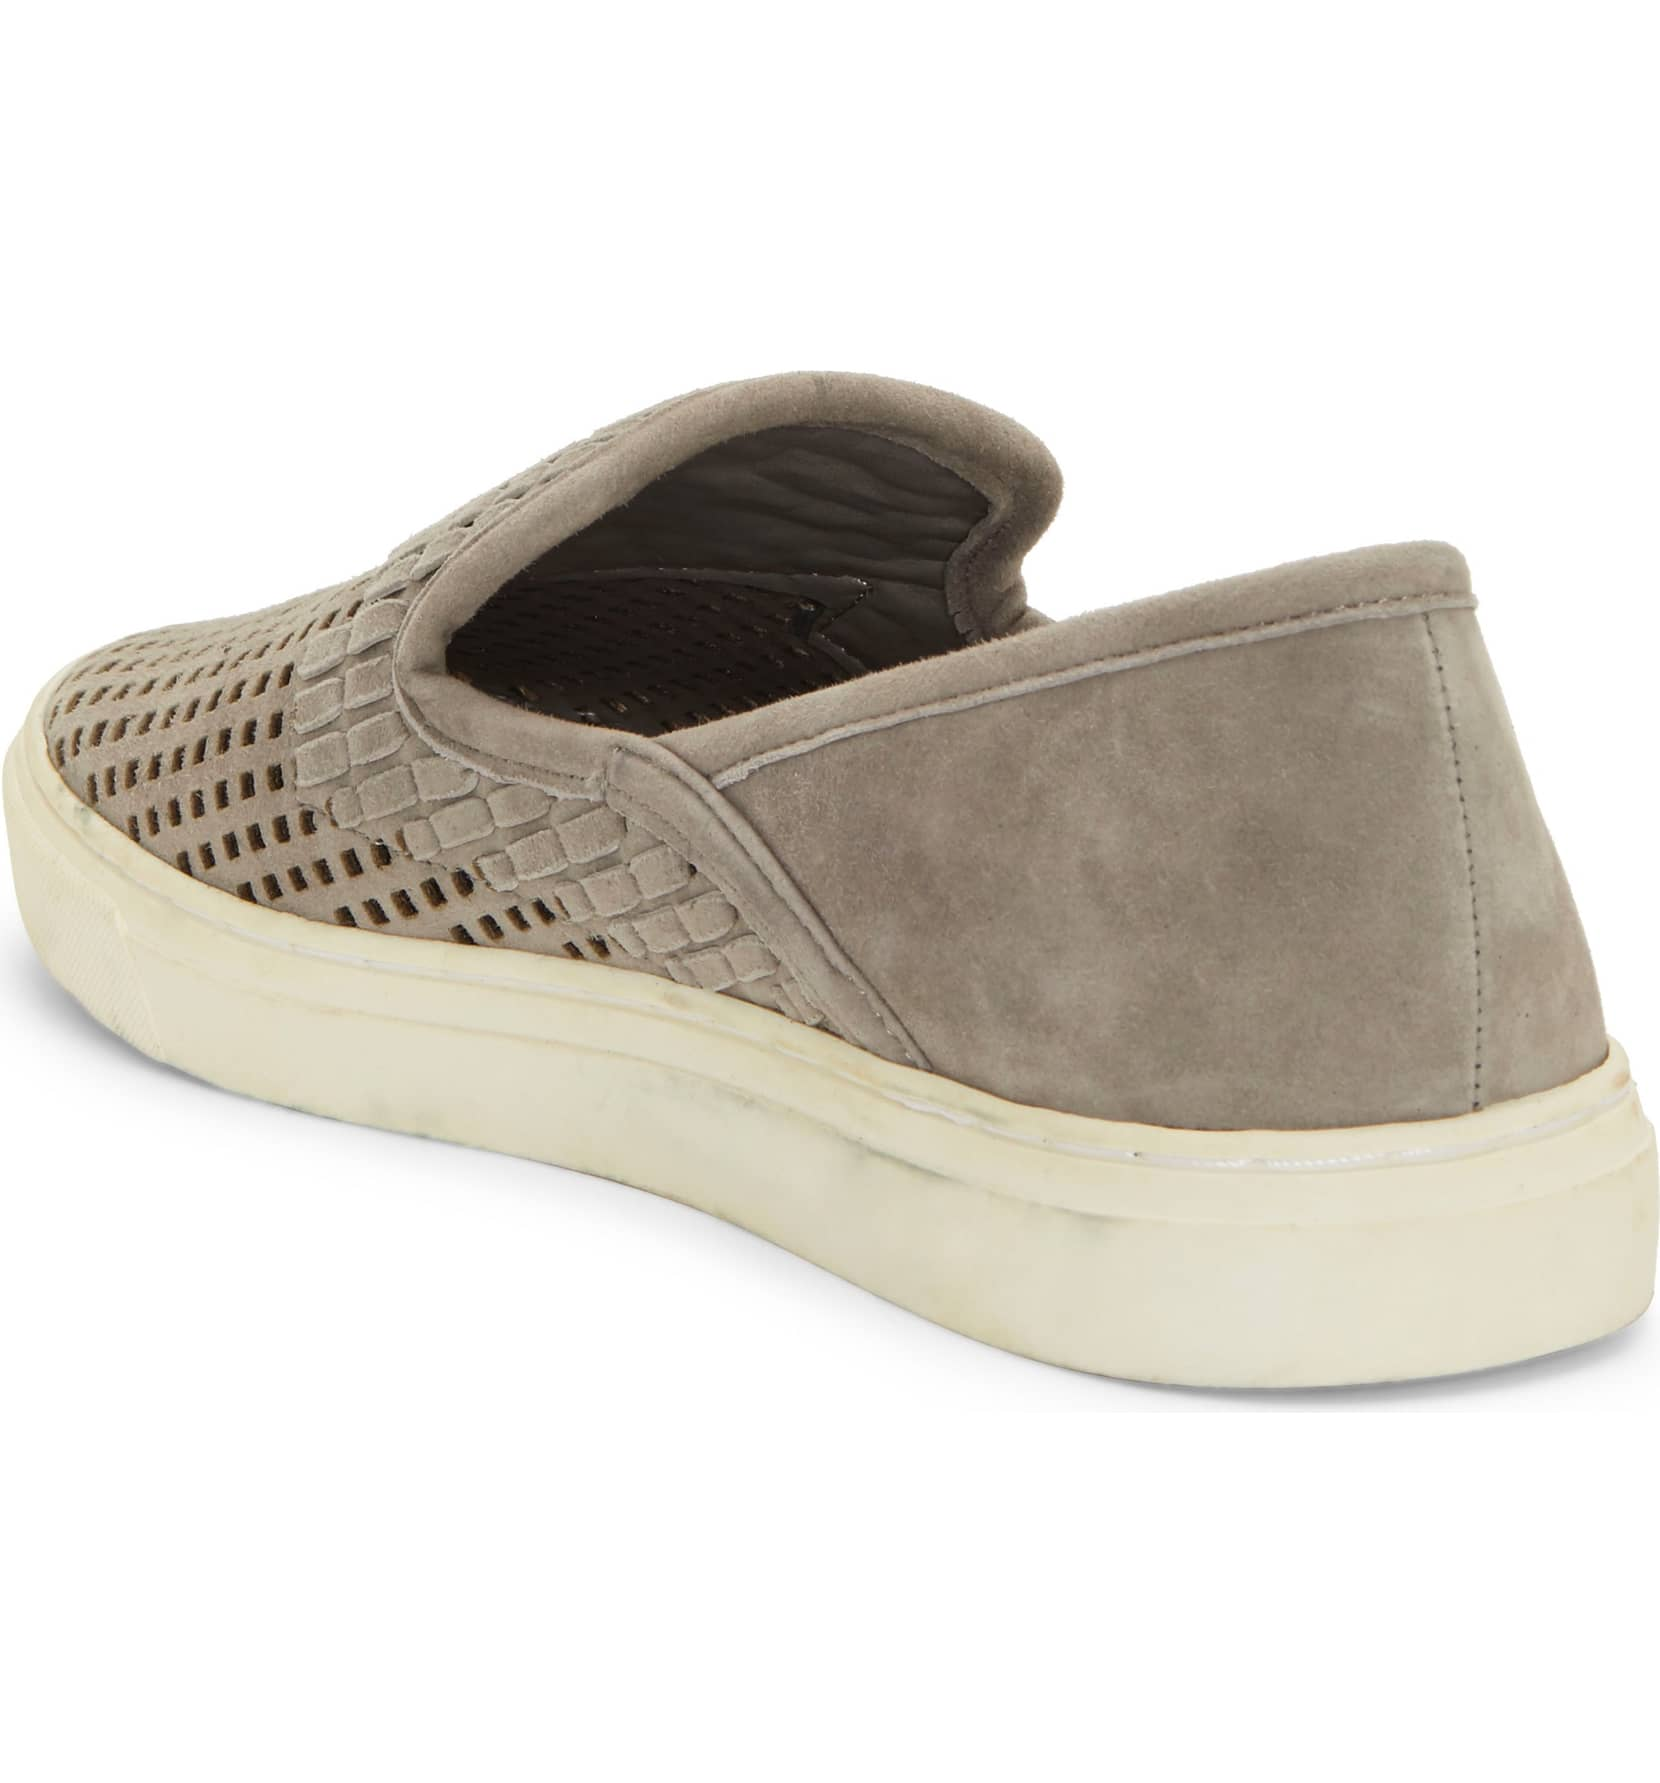 Vince-Camuto-Bristie-Storm-Grey-Leather-Woven-White-Sole-Slip-On-Sneakers thumbnail 37